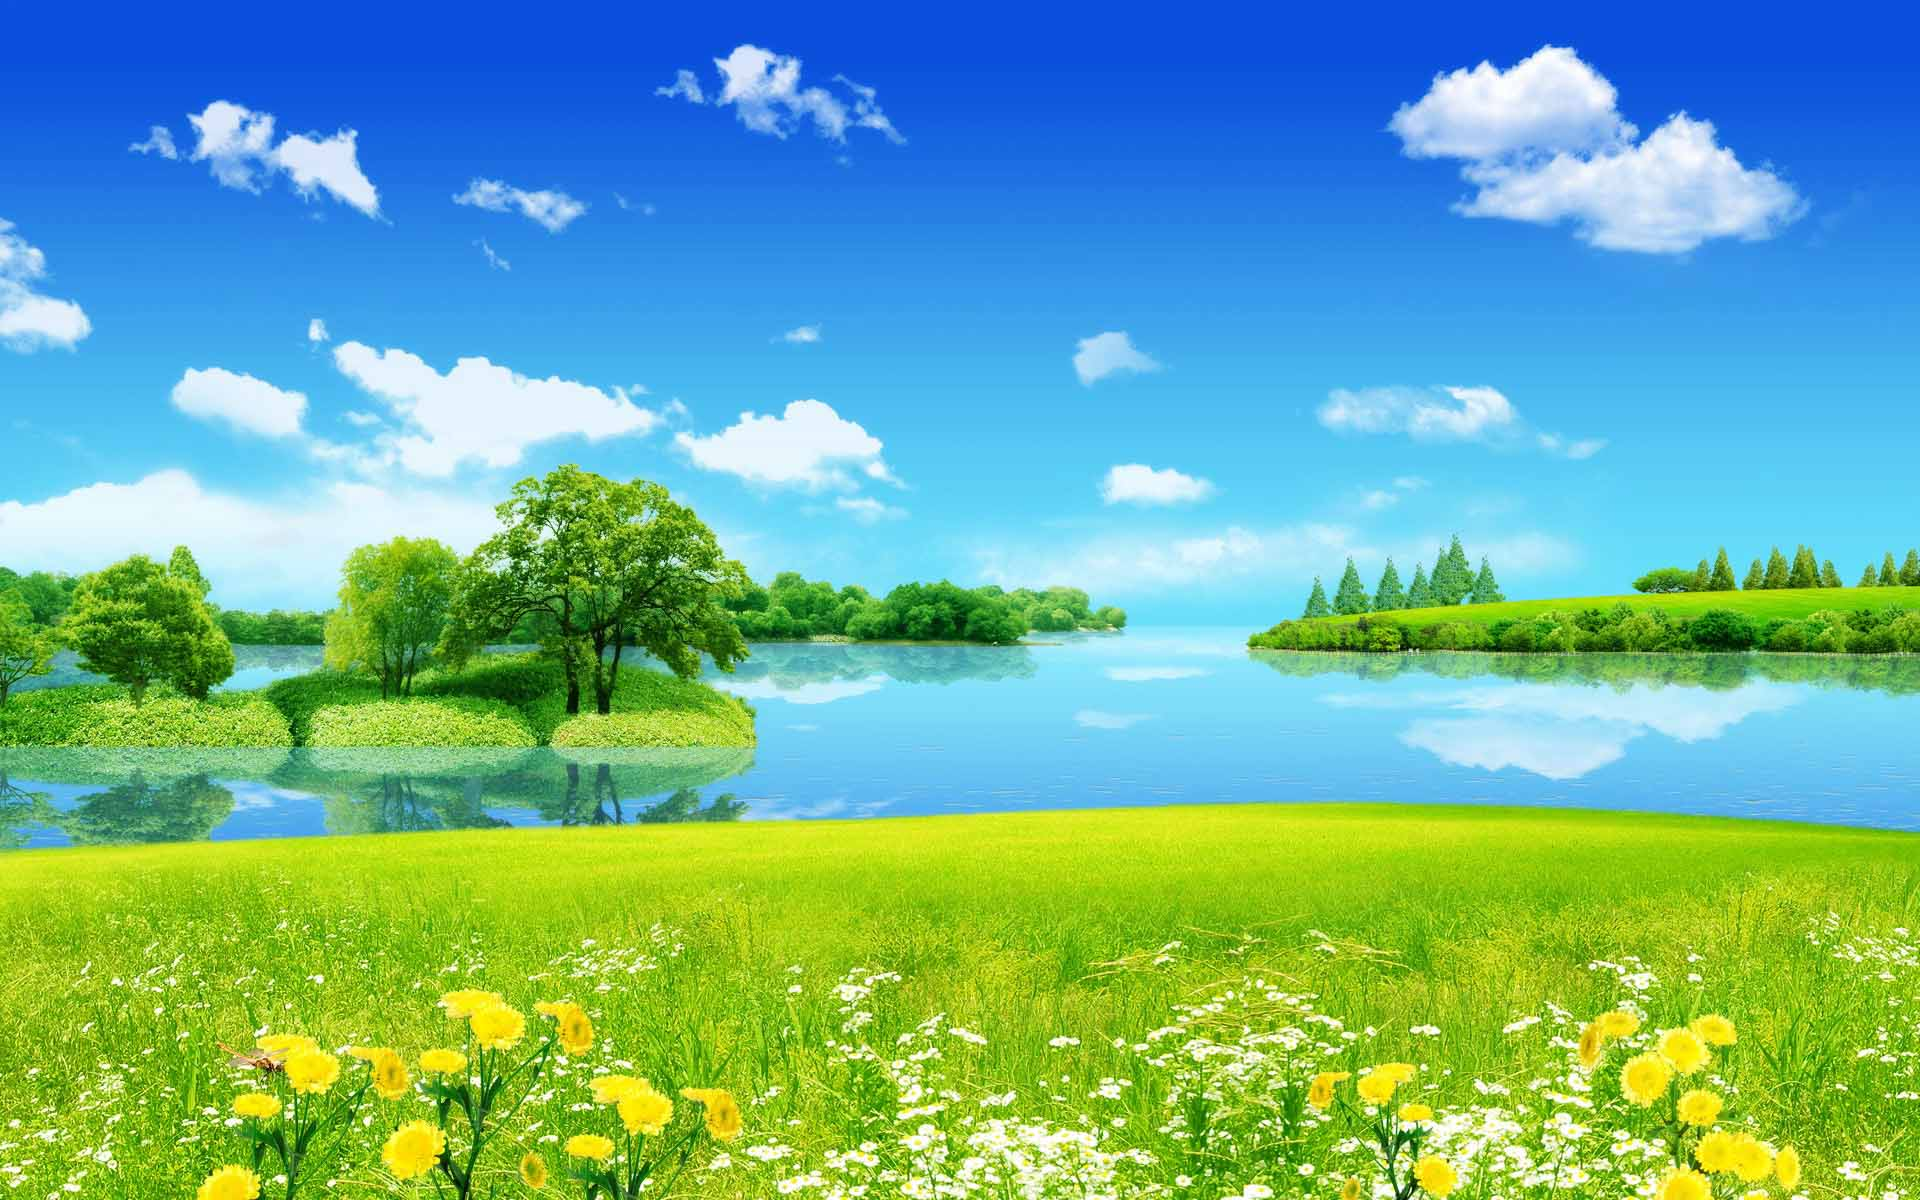 39 - Wallpapers 1280x800 nature ...